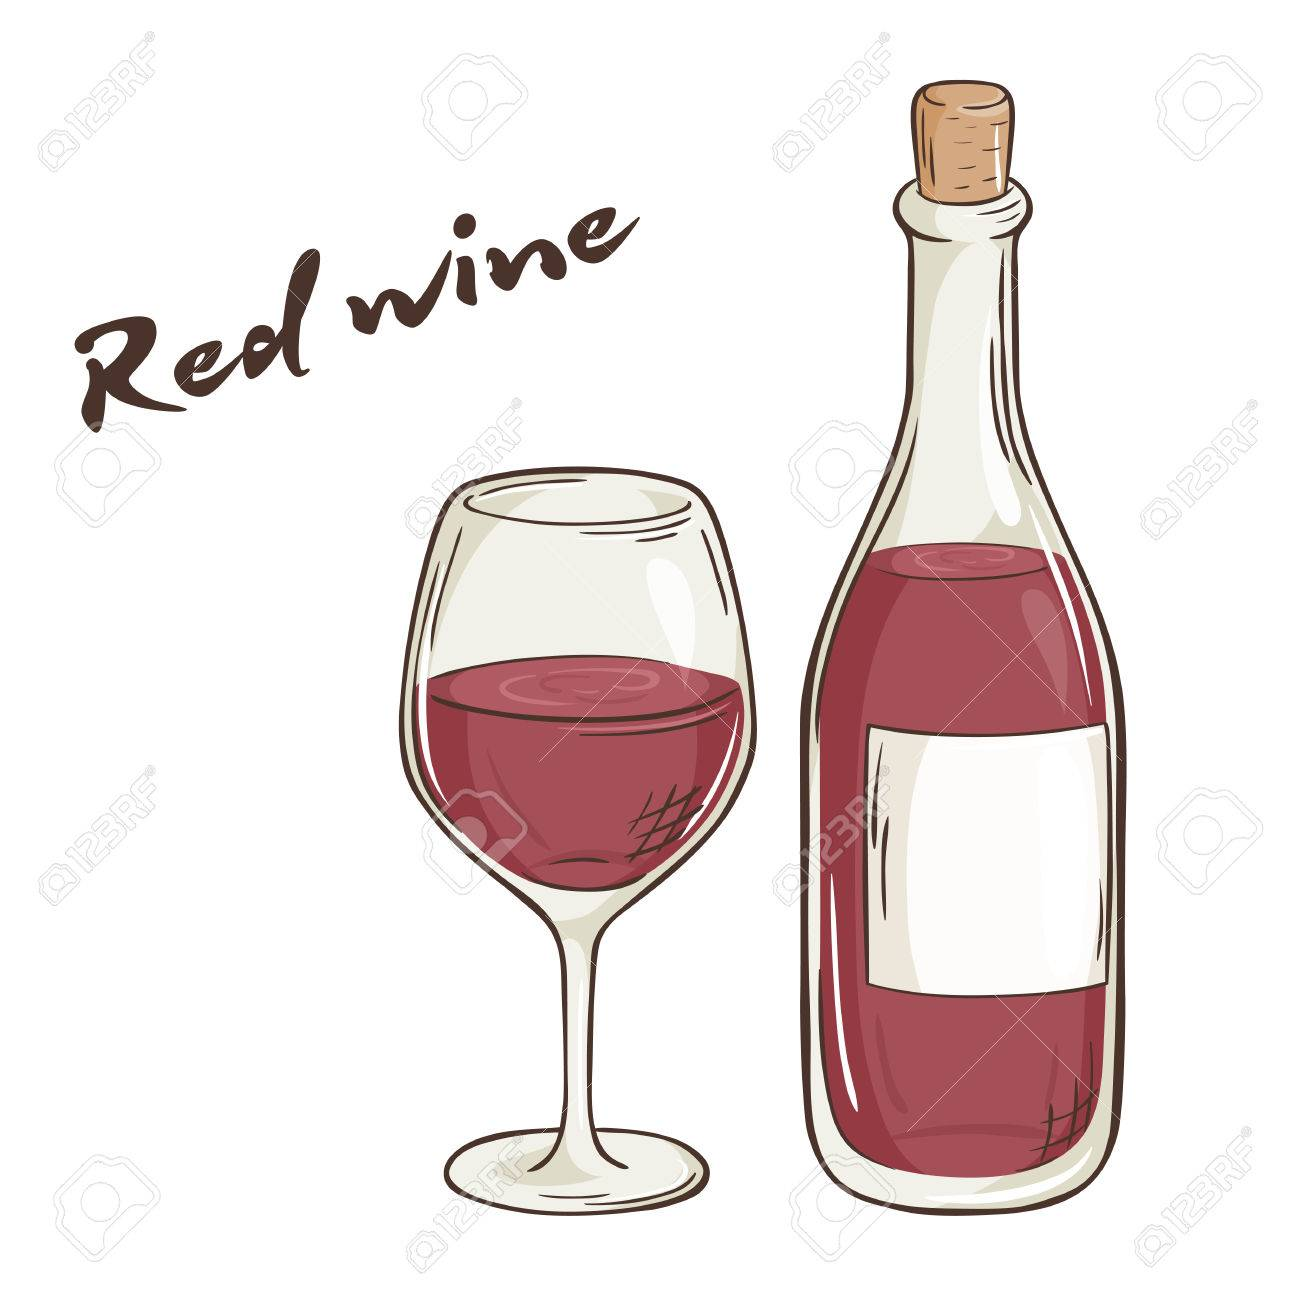 vector hand drawn illustration of bottle and glass of red wine. - 51269936